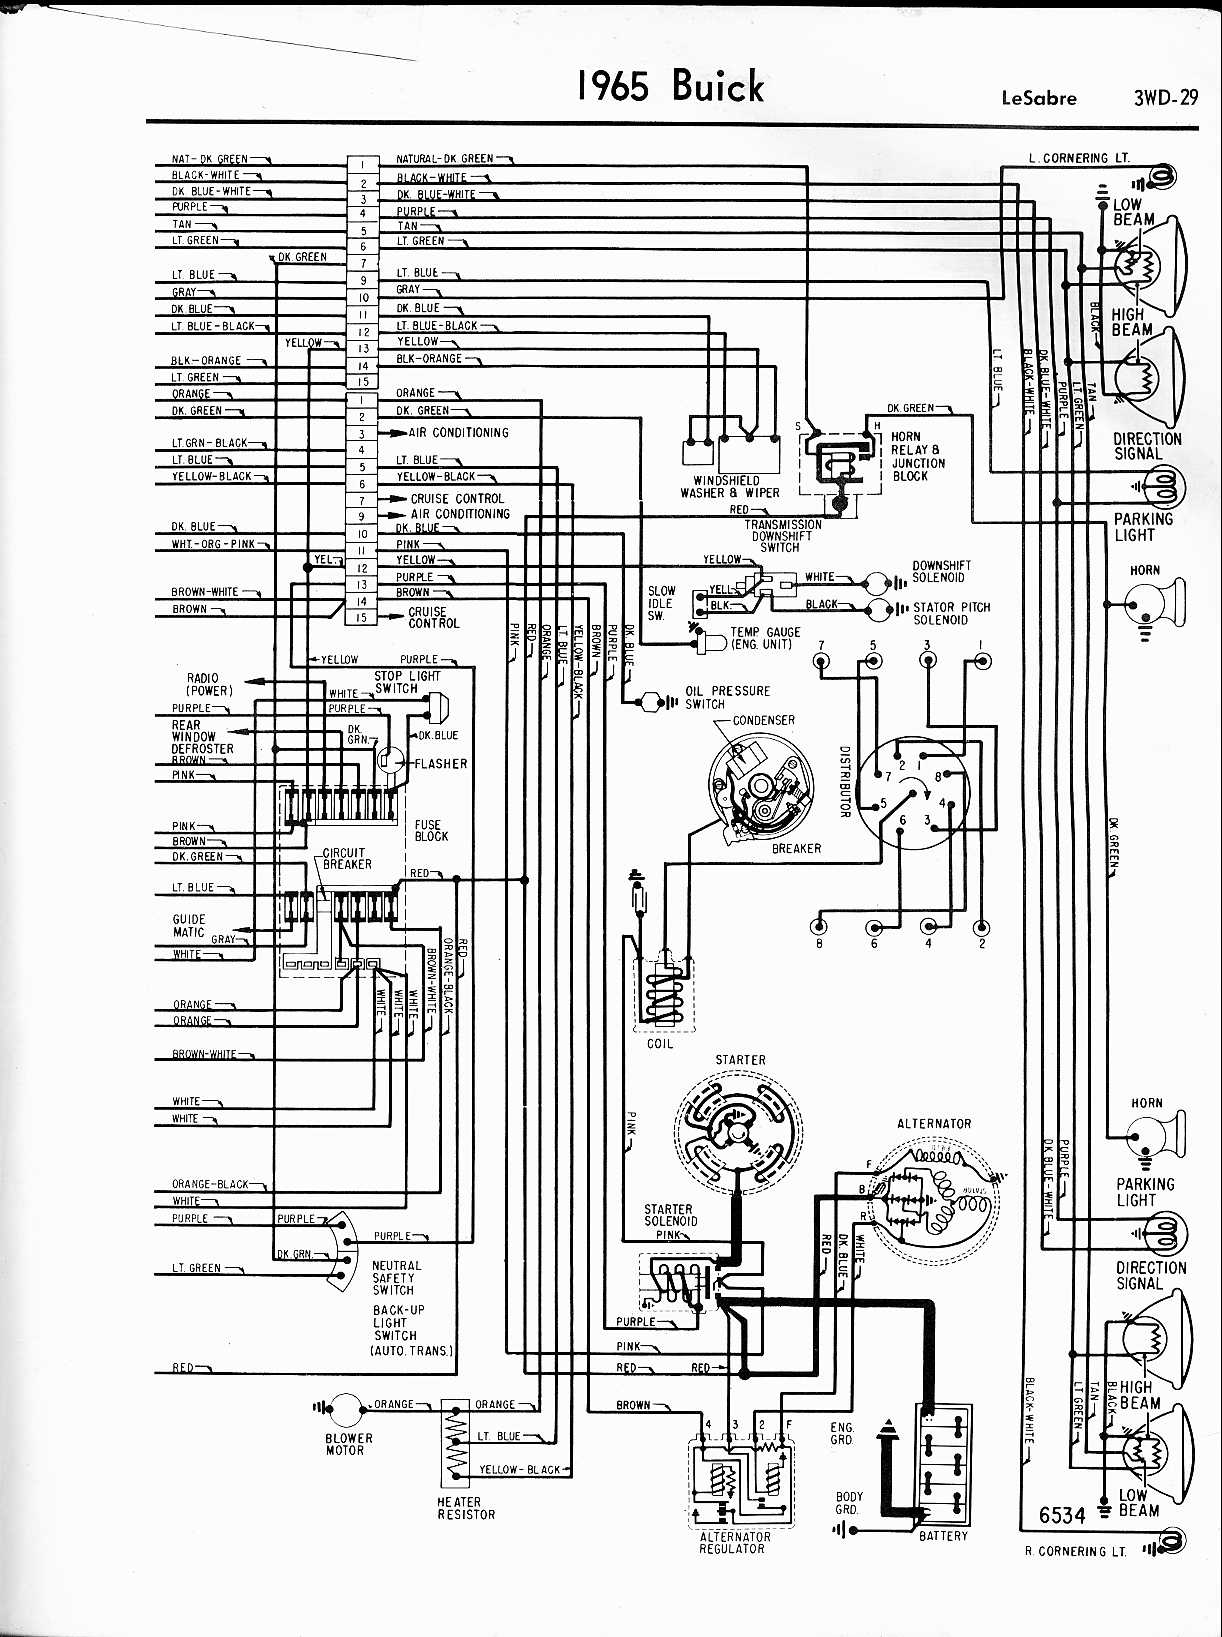 Buickindex on Nissan Car Stereo Wiring Diagram